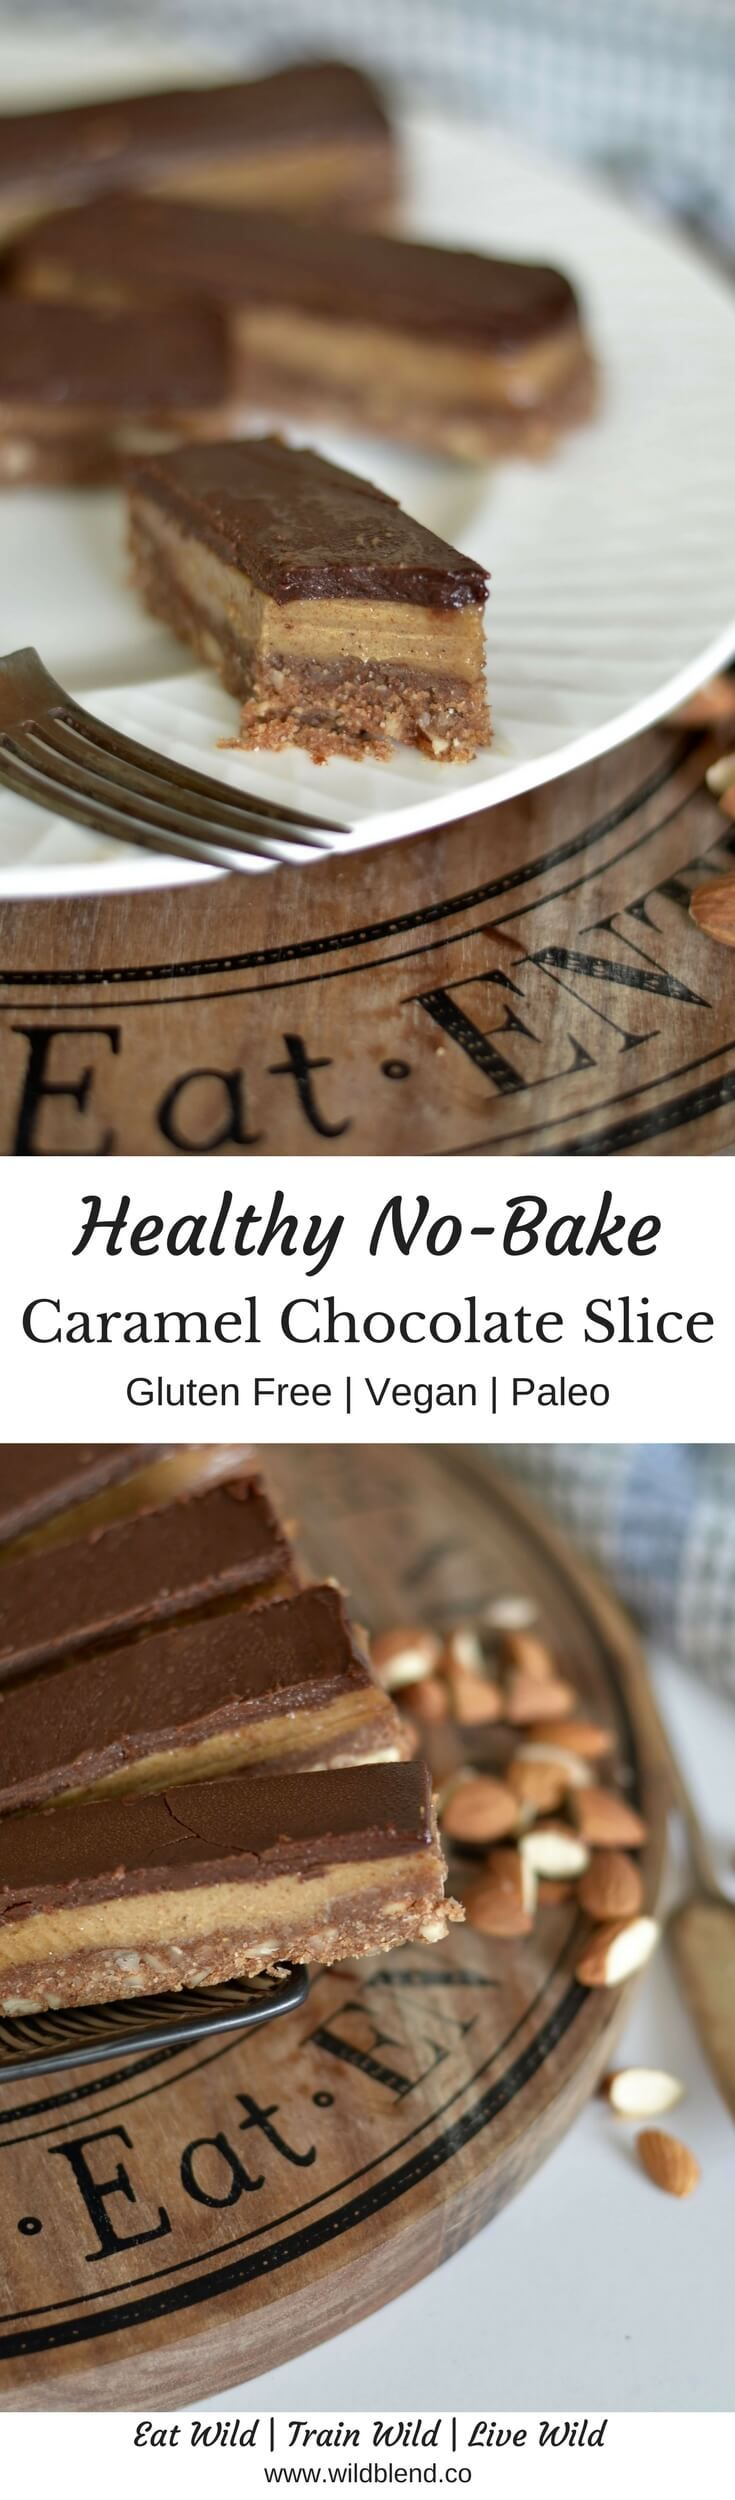 Think sticky caramel sandwiched between a healthy chocolate and gluten-free biscuit layers. This healthy chocolate caramel slice is too good to just eat one! Get the full recipe here: https://www.wildblend.co/healthy-chocolate-caramel-slice/